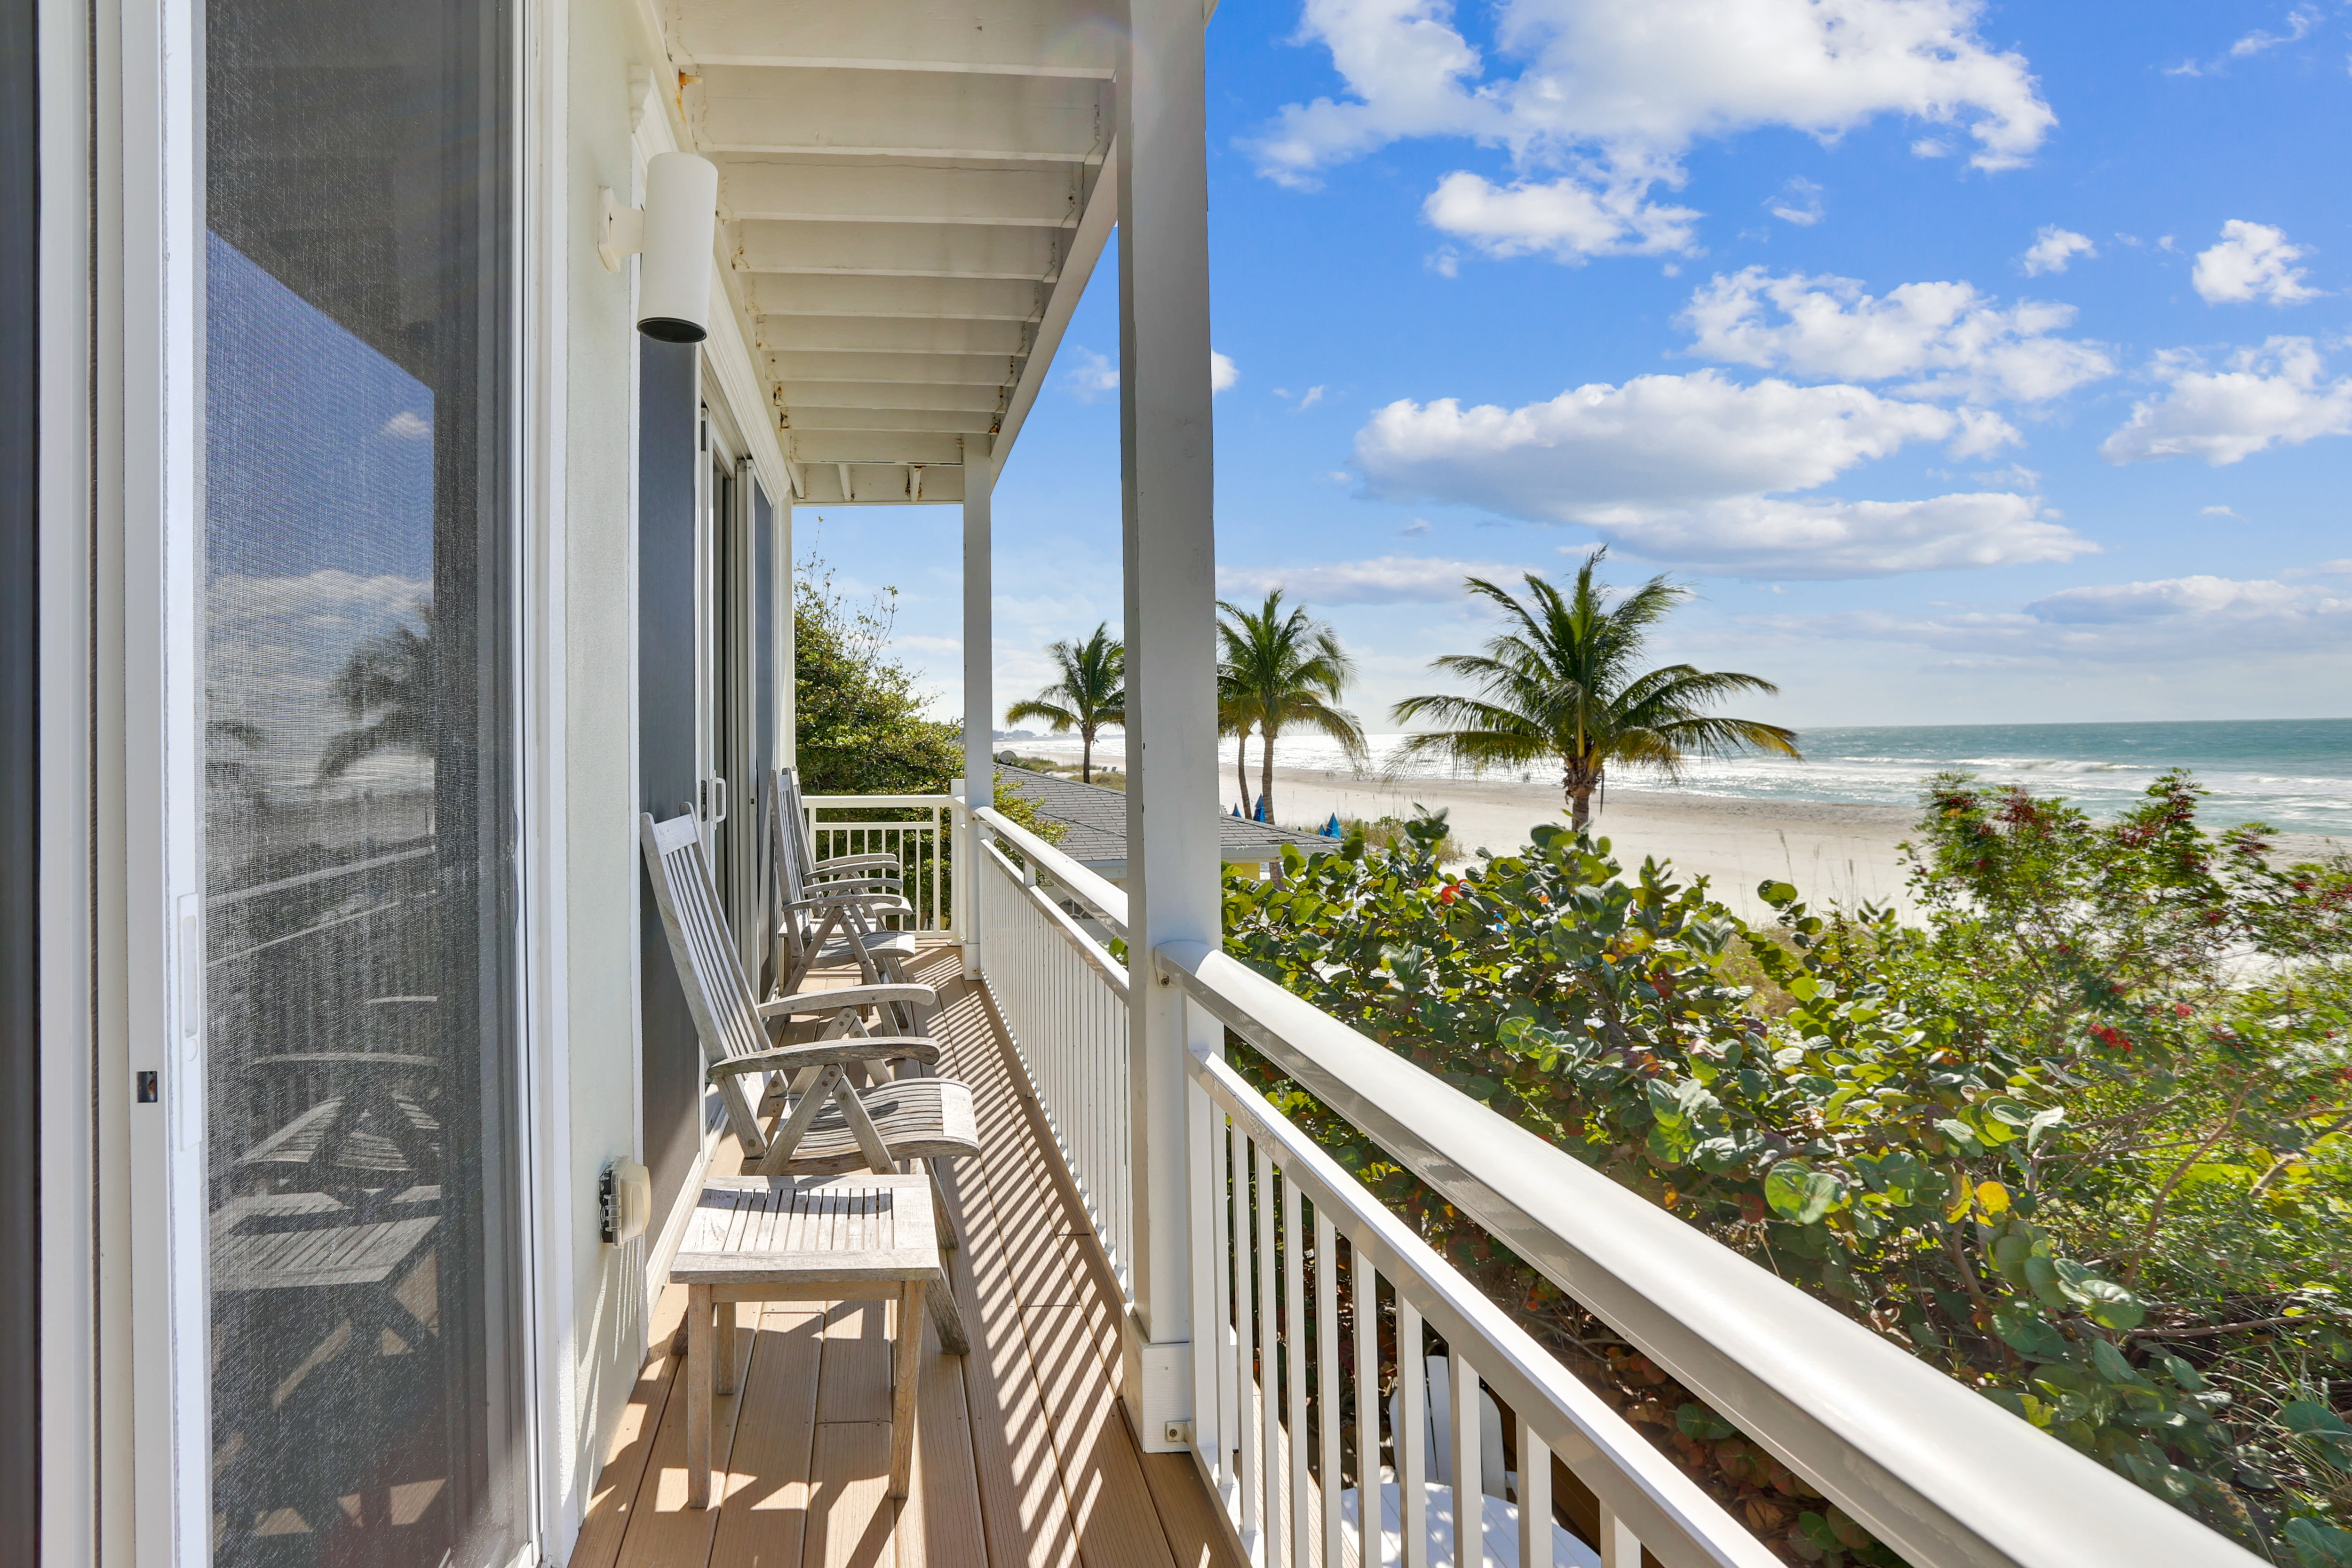 Property Image 2 - Picturesque Beach Front Condo with Ocean Views